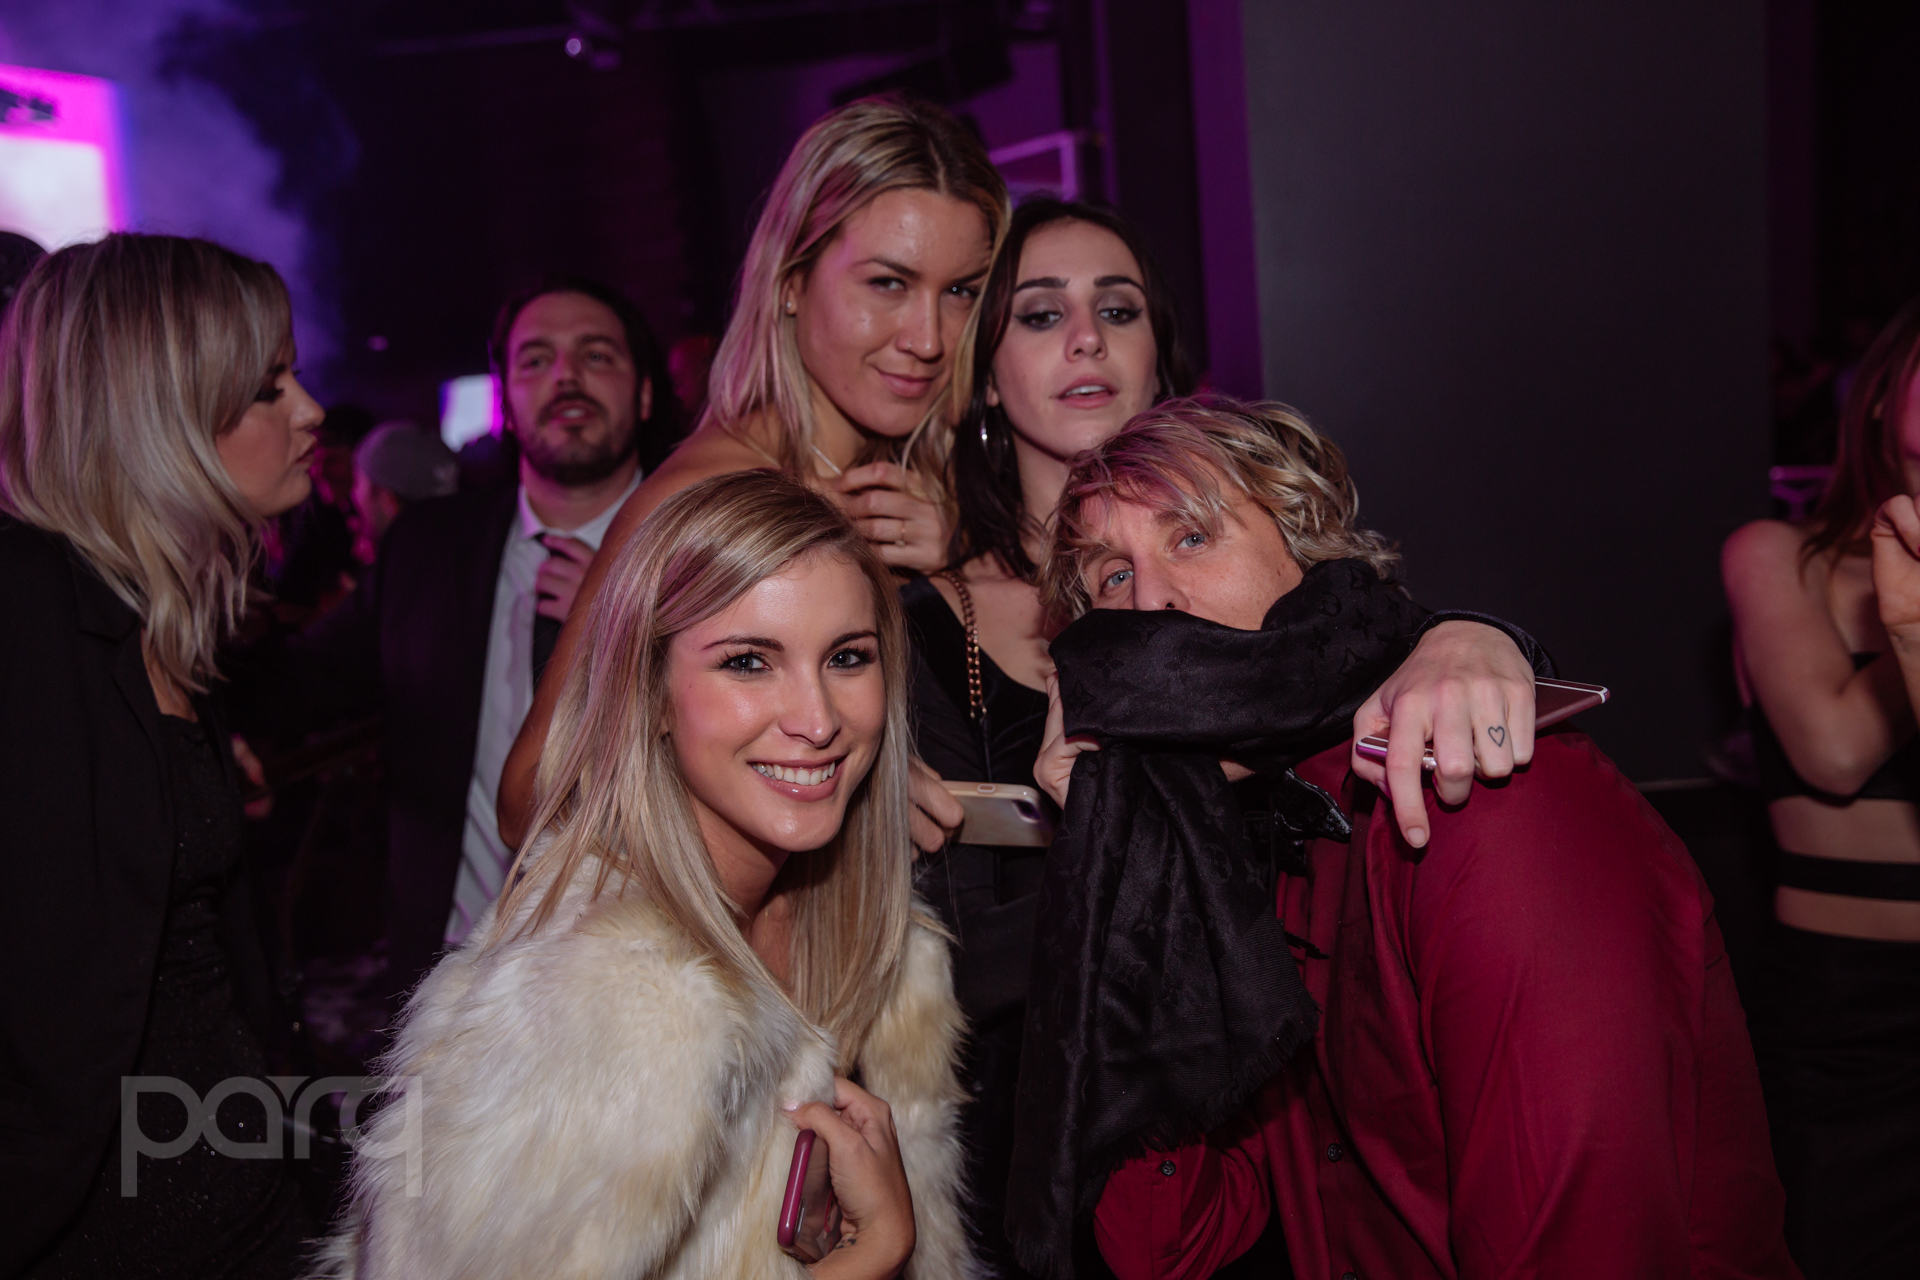 12.16.17 Parq - Zoo Funktion-12.jpg